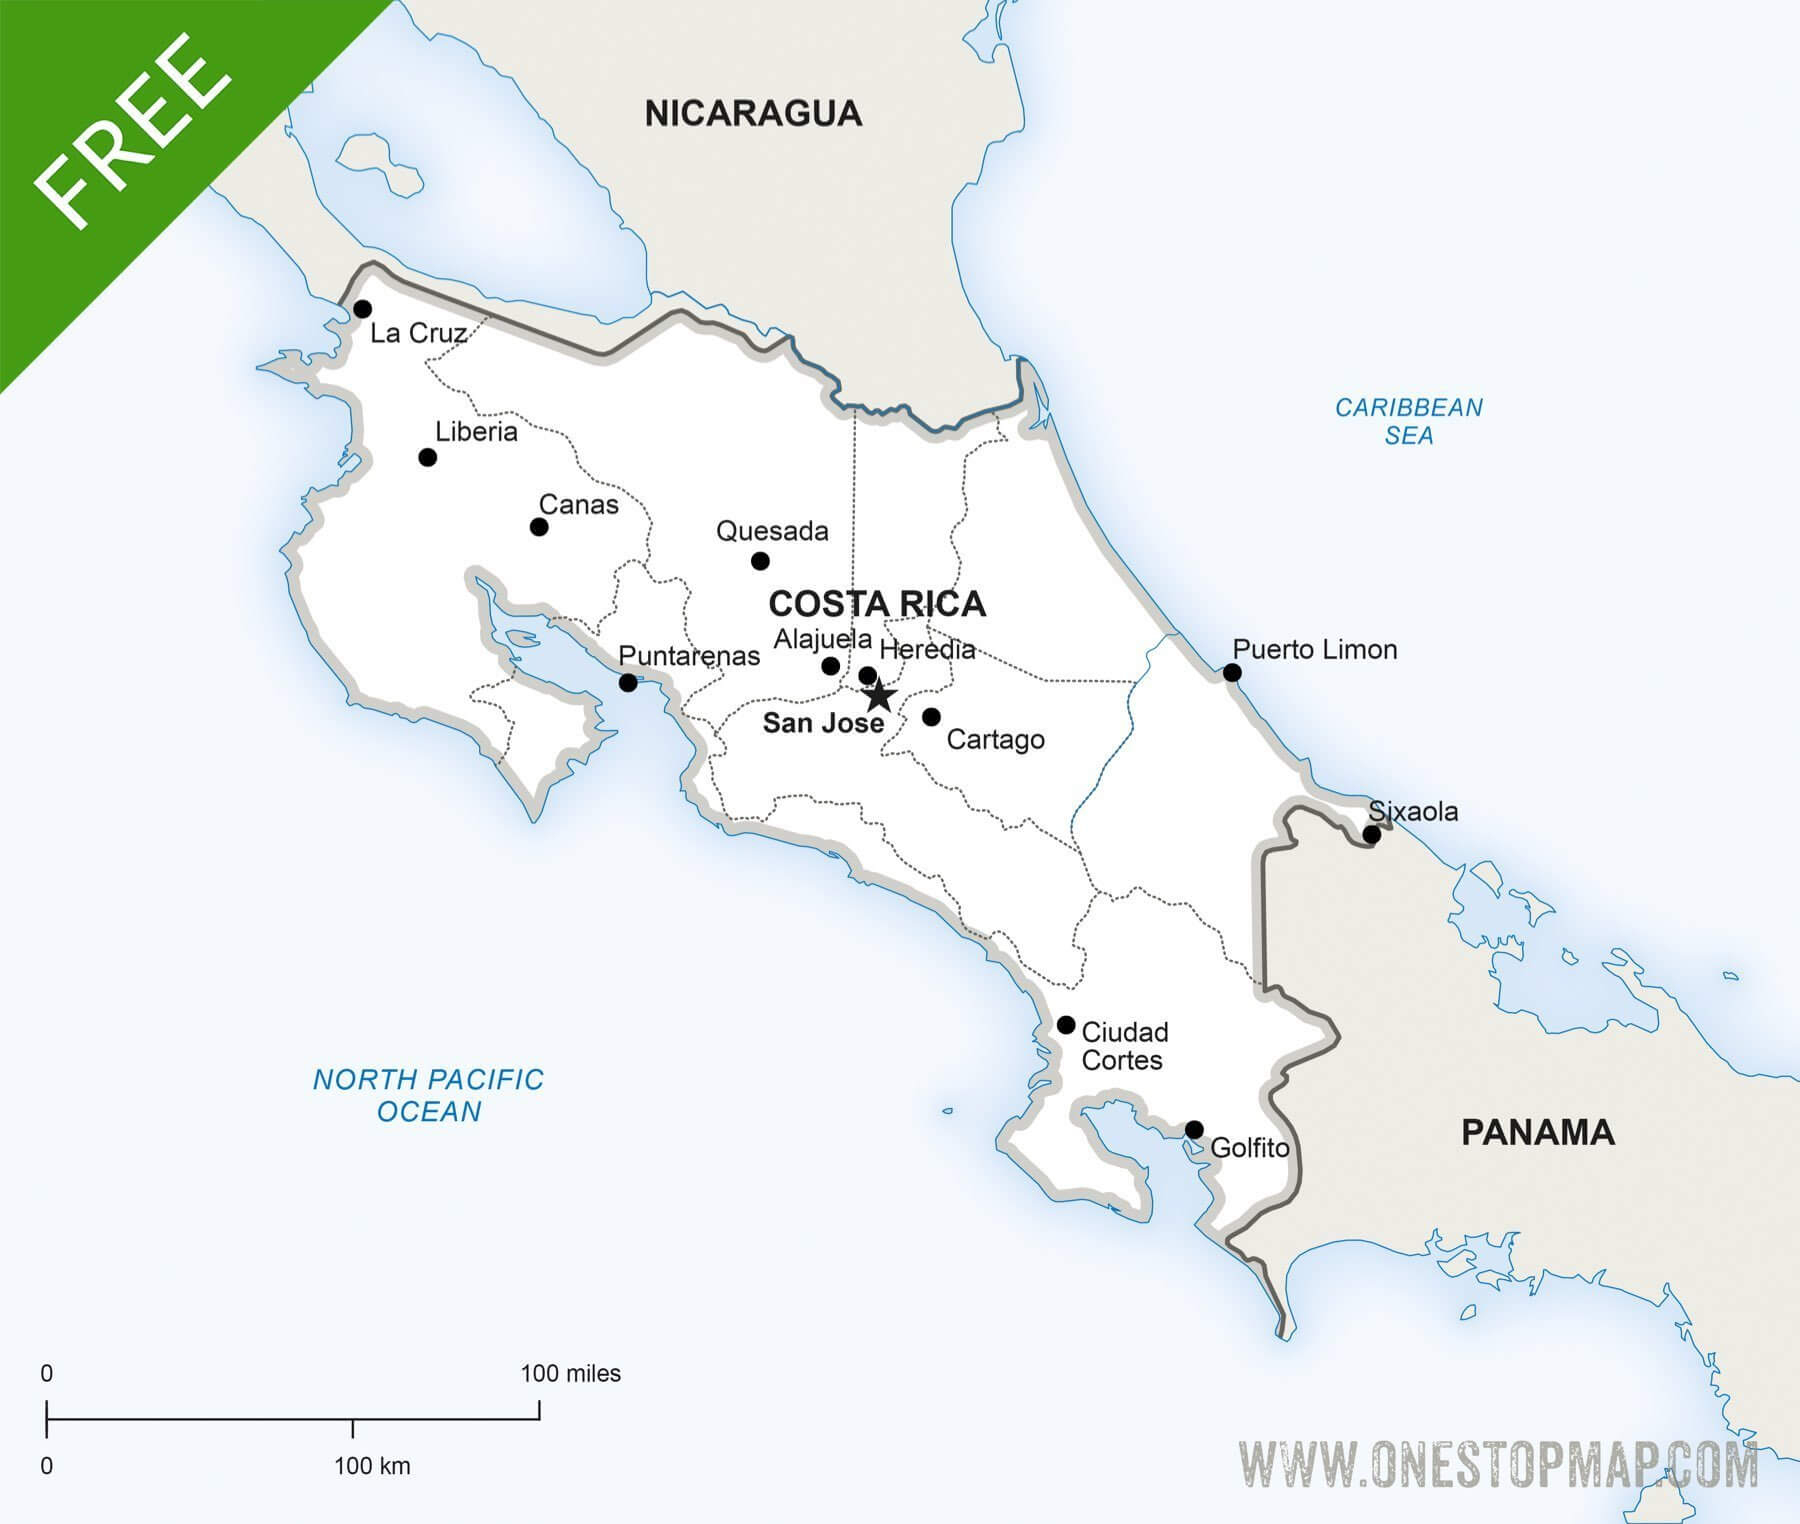 Free Vector Map Of Costa Rica Political   One Stop Map - Free Printable Map Of Costa Rica